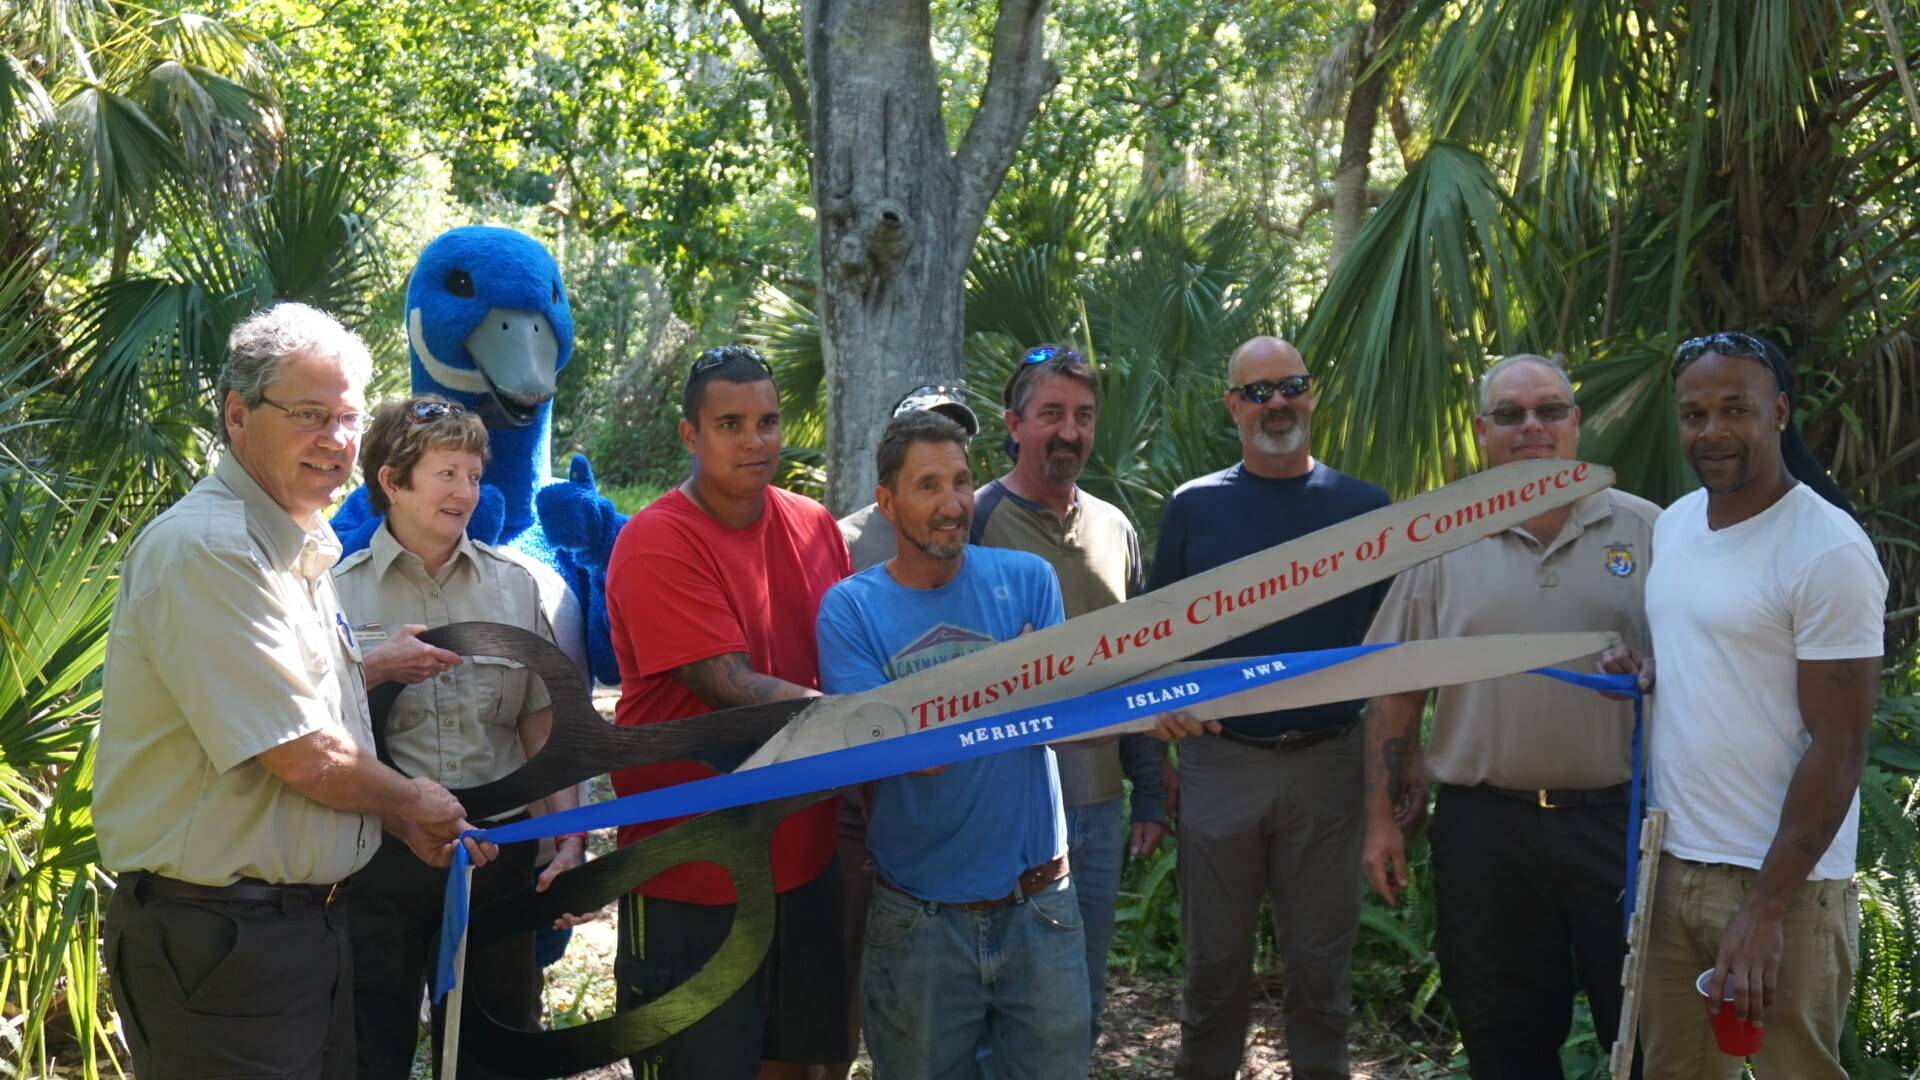 Ribbon cutting for reopening of the Hammock Trails at Merritt Island NWR